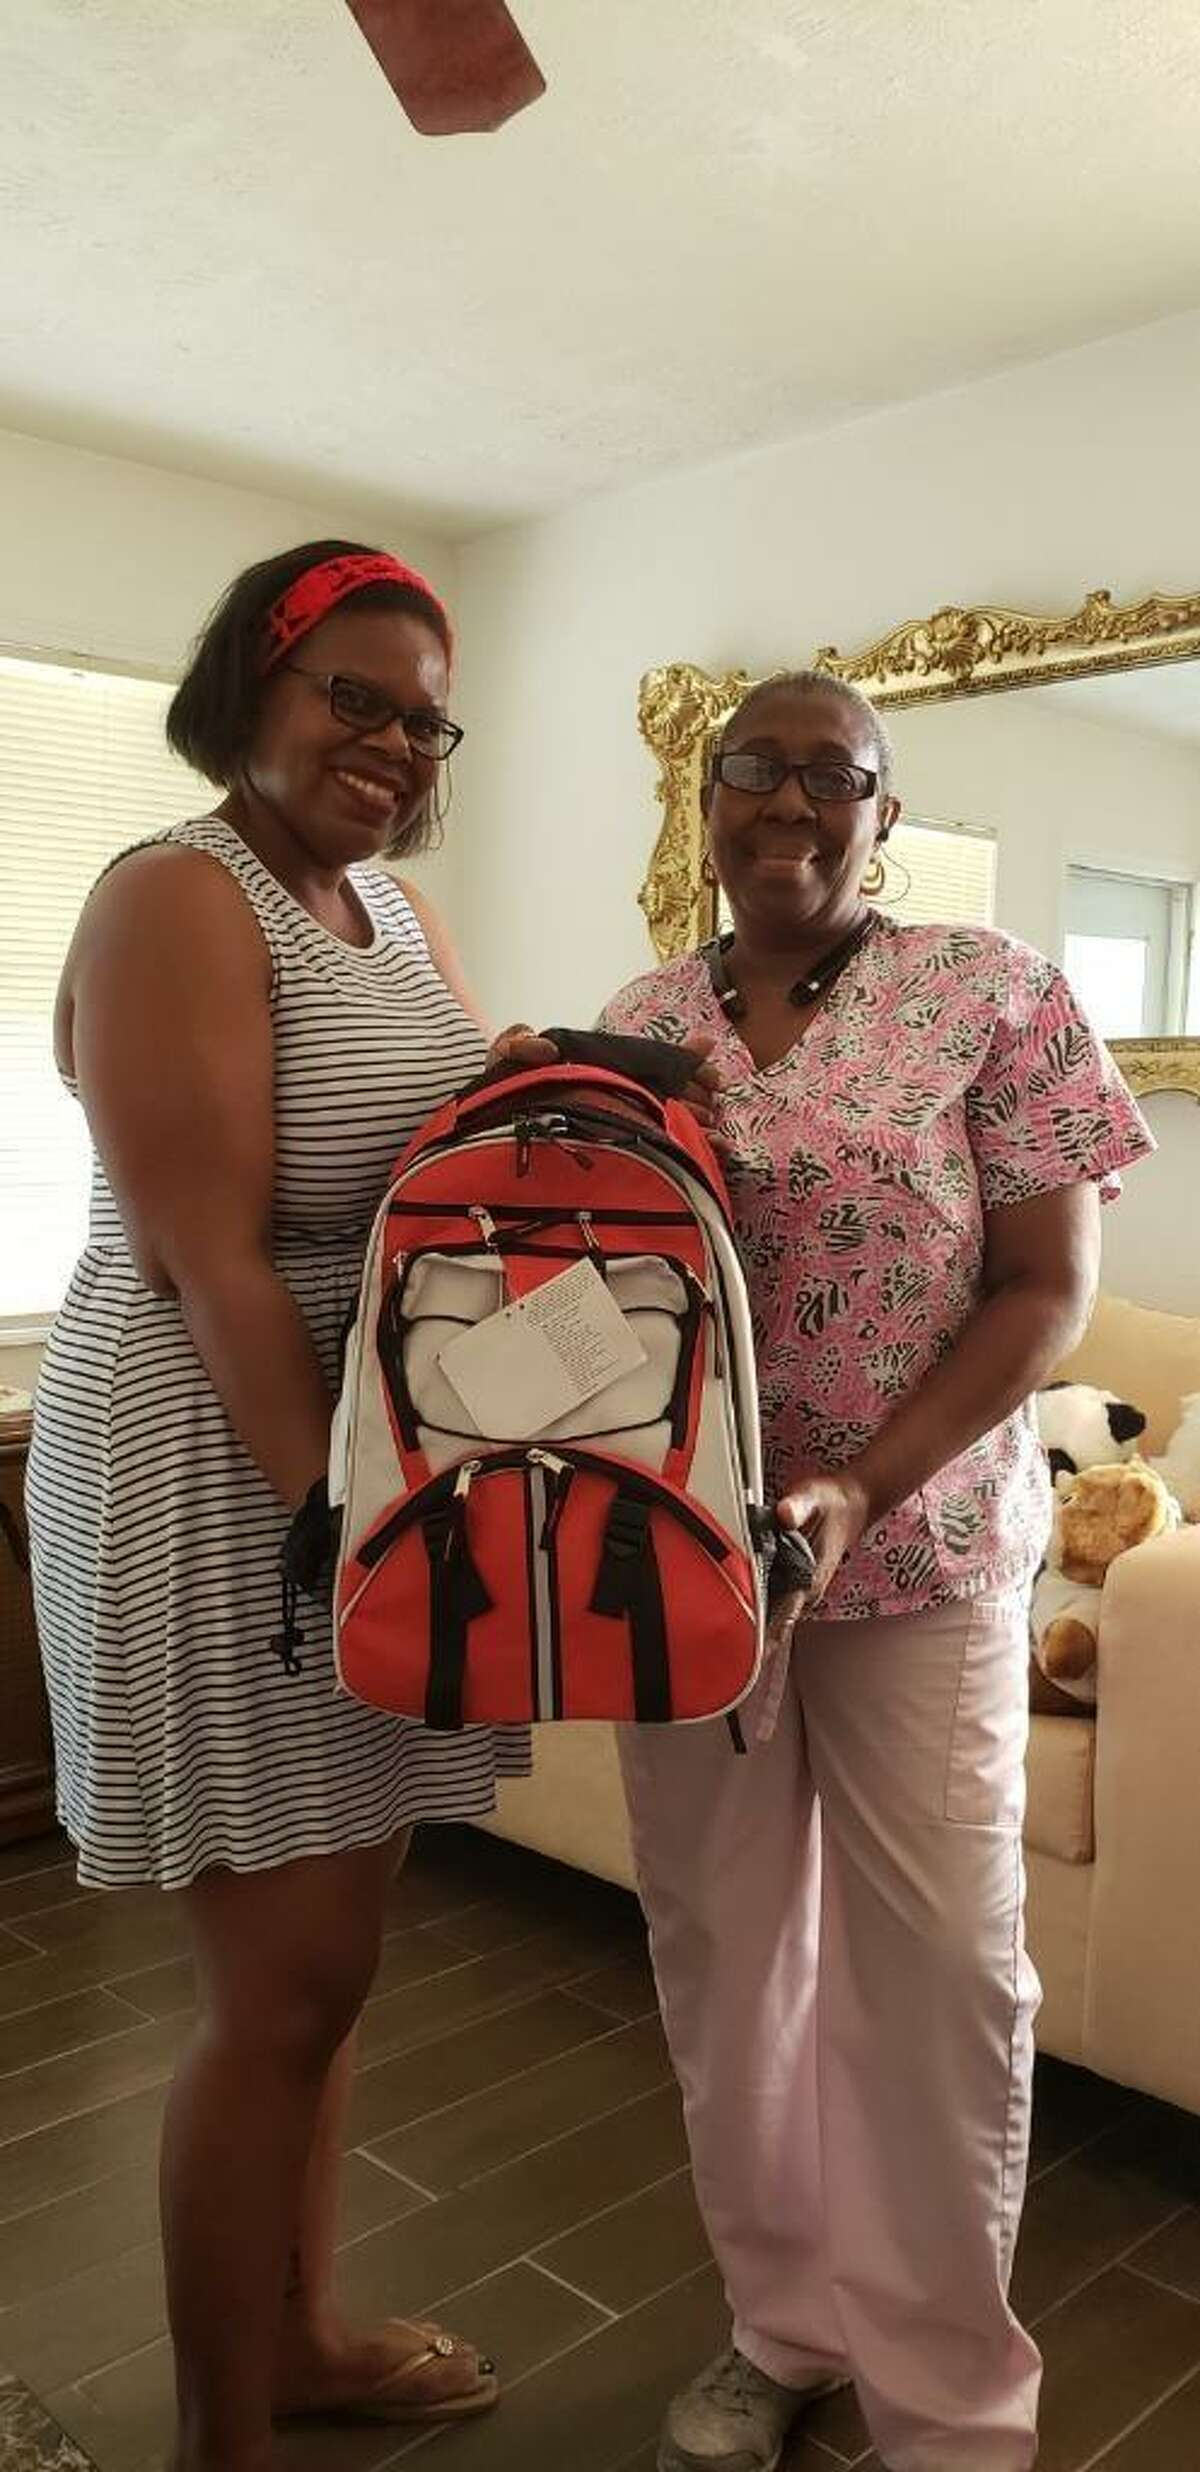 Deanna Adams and Jackie White posing on Saturday, July 28. Adams, of West Street Recovery, dropped off a disaster bag to White, whose home was devastated in Hurricane Harvey.